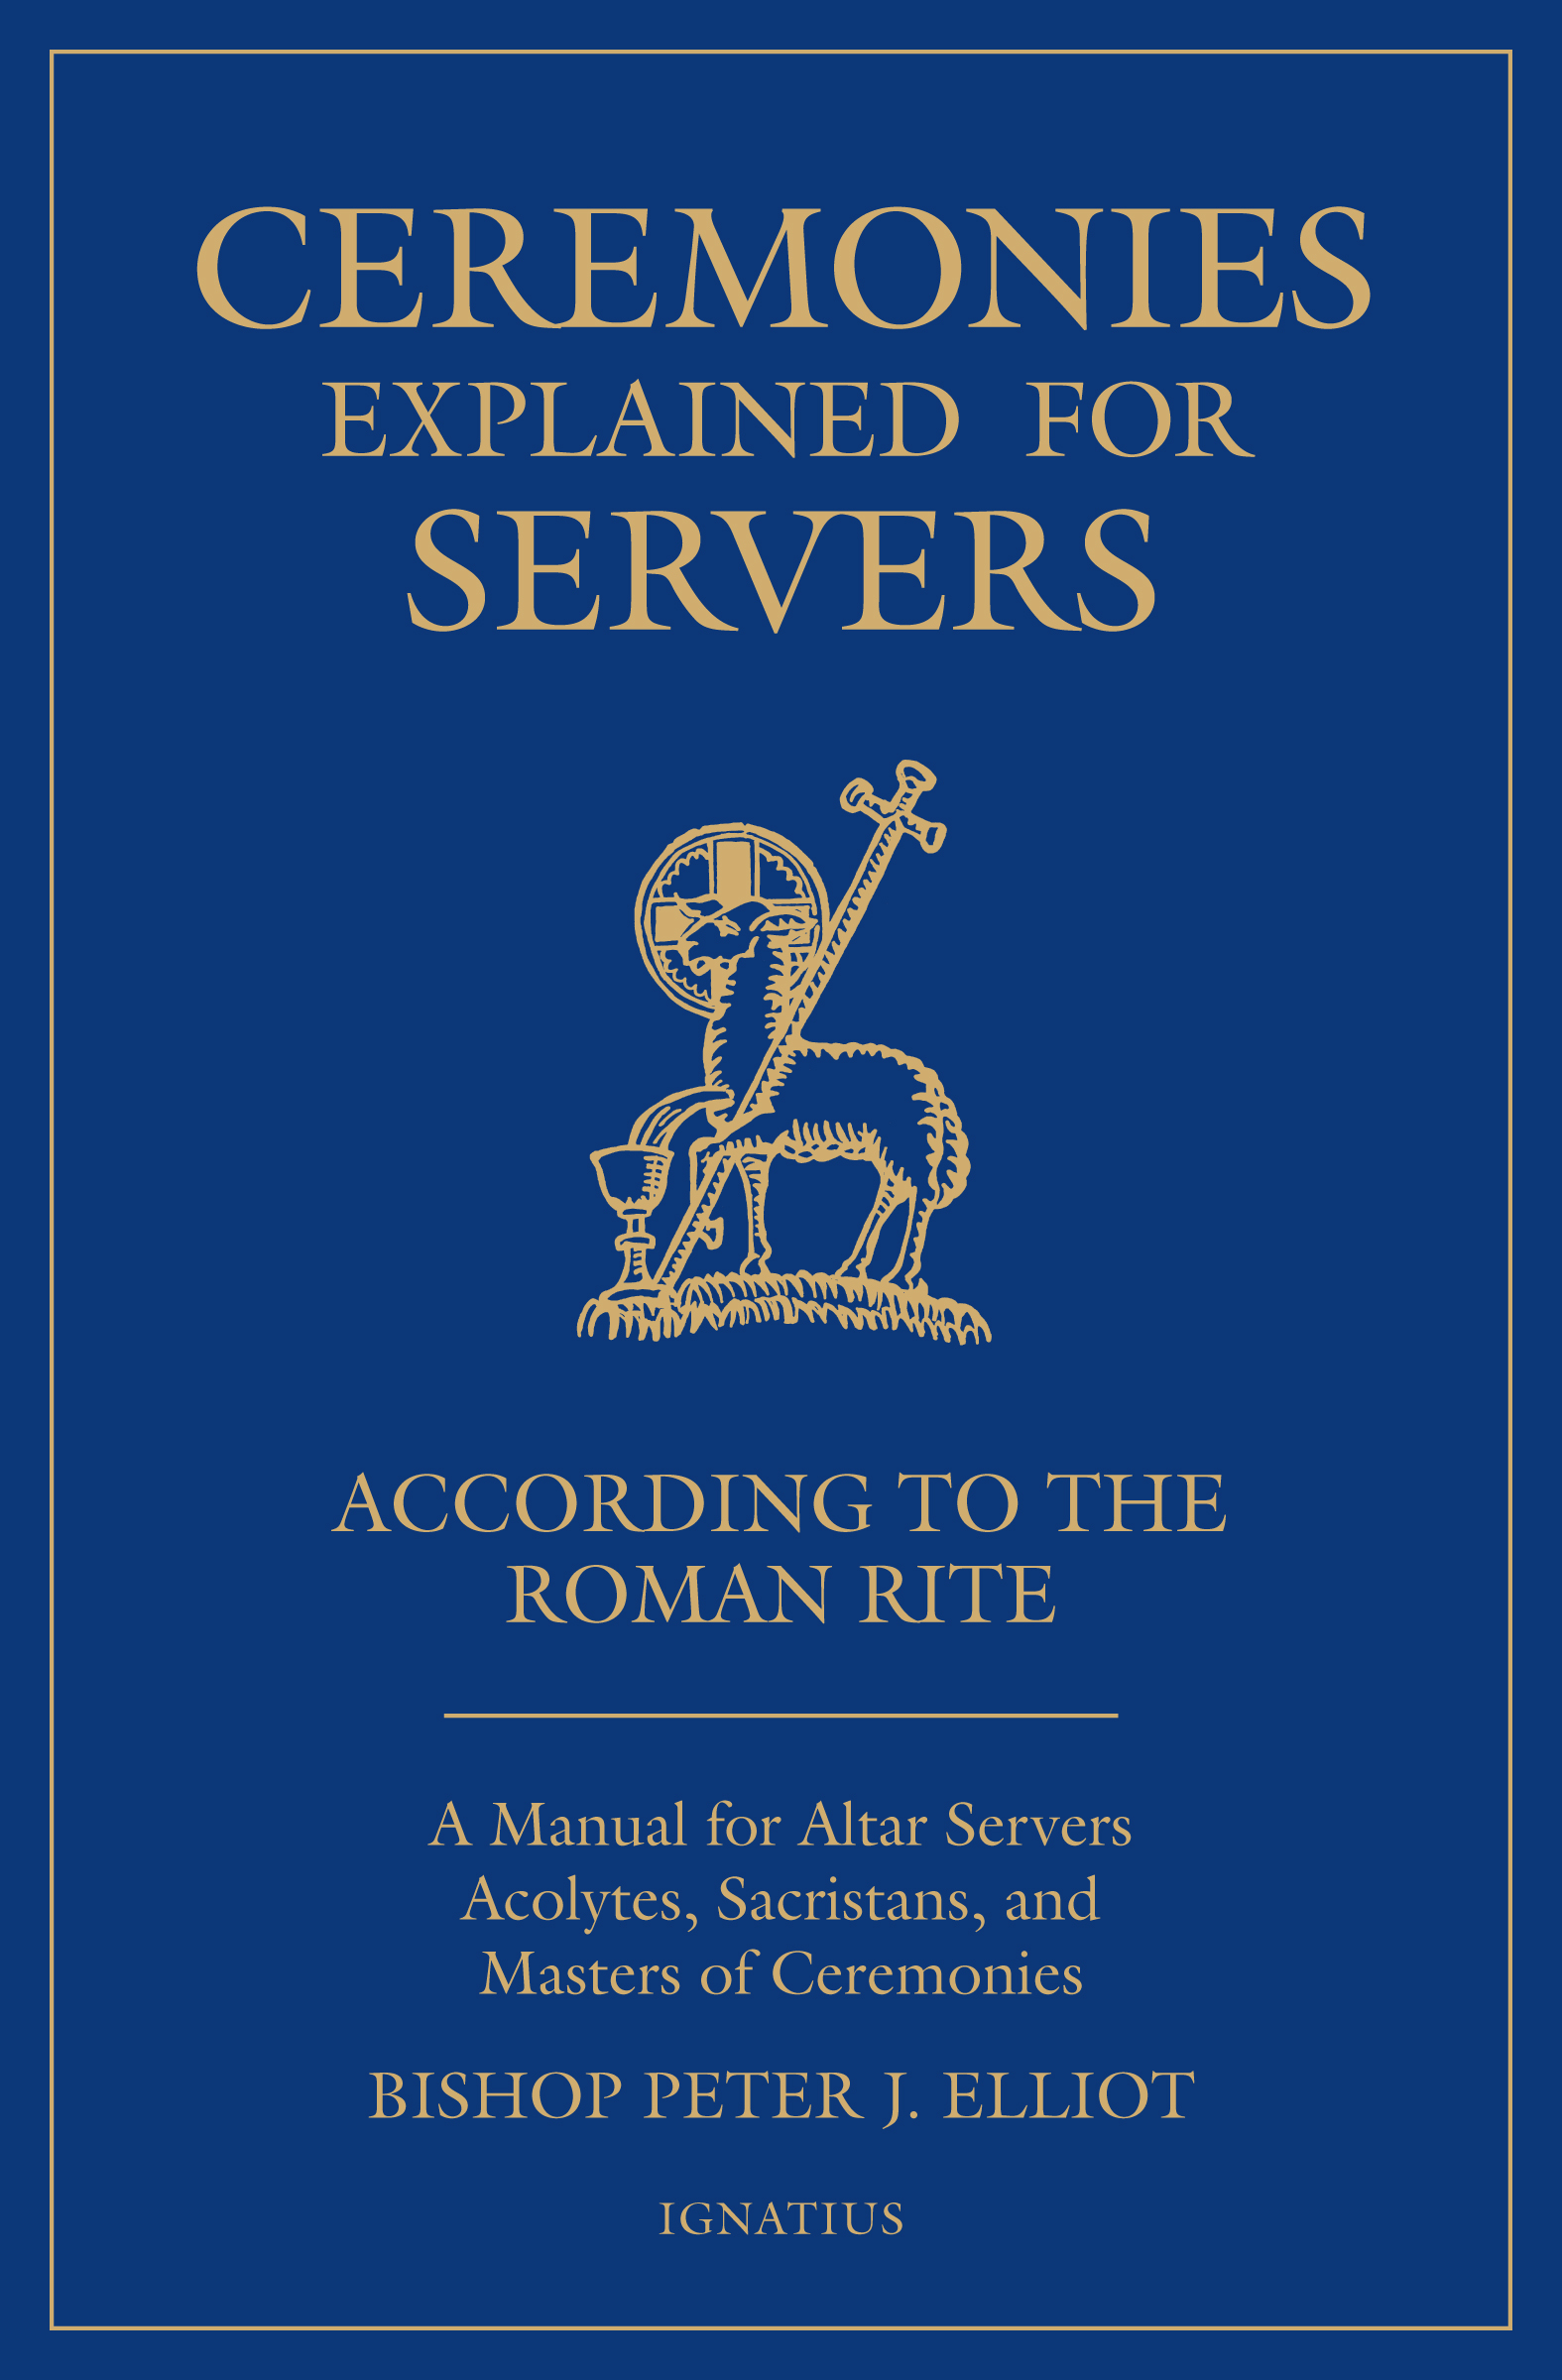 Ceremonies Explained for Servers